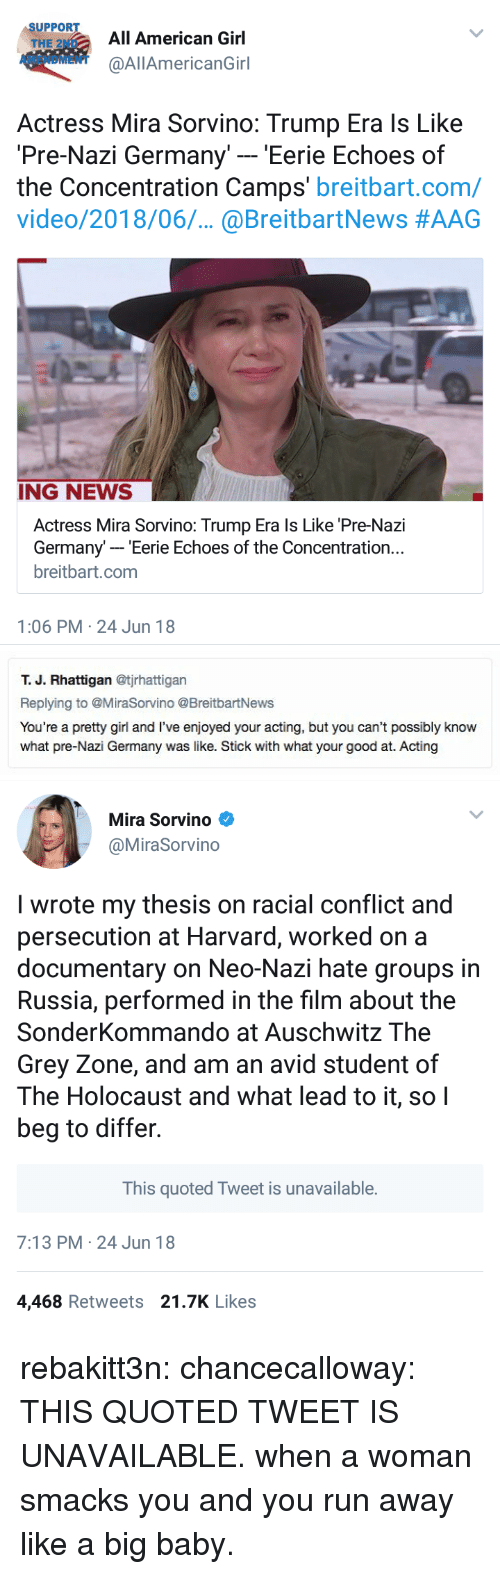 Auschwitz: SUPPORT  THE 2ND  AMENDMENT  All American Girl  @AllAmericanGirl  Actress Mira Sorvino: Trump Era ls Like  Pre-Nazi Germany' - 'Eerie Echoes of  the Concentration Camps' breitbart.com/  video/2018/06.. @BreitbartNews #AAG  ING NEWS  Actress Mira Sorvino: Trump Era ls Like 'Pre-Nazi  Germany- Eerie Echoes of the Concentration..  breitbart.com  1:06 PM 24 Jun 18   т. Ј. Rhattigan @tjrhattigan  Replying to @MiraSorvino @BreitbartNews  You're a pretty girl and I've enjoyed your acting, but you can't possibly know  what pre-Nazi Germany was like. Stick with what your good at. Acting   Mira Sorvino  @MiraSorvino  I wrote my thesis on racial conflict and  persecution at Harvard, worked on a  documentary on Neo-Nazi hate groups in  Russia, performed in the film about the  SonderKommando at Auschwitz The  Grey Zone, and am an avid student of  The Holocaust and what lead to it, soI  beg to differ.  This quoted Tweet is unavailable.  7:13 PM 24 Jun 18  4,468 Retweets 21.7K Likes rebakitt3n:  chancecalloway: THIS QUOTED TWEET IS UNAVAILABLE. when a woman smacks you and you run away like a big baby.